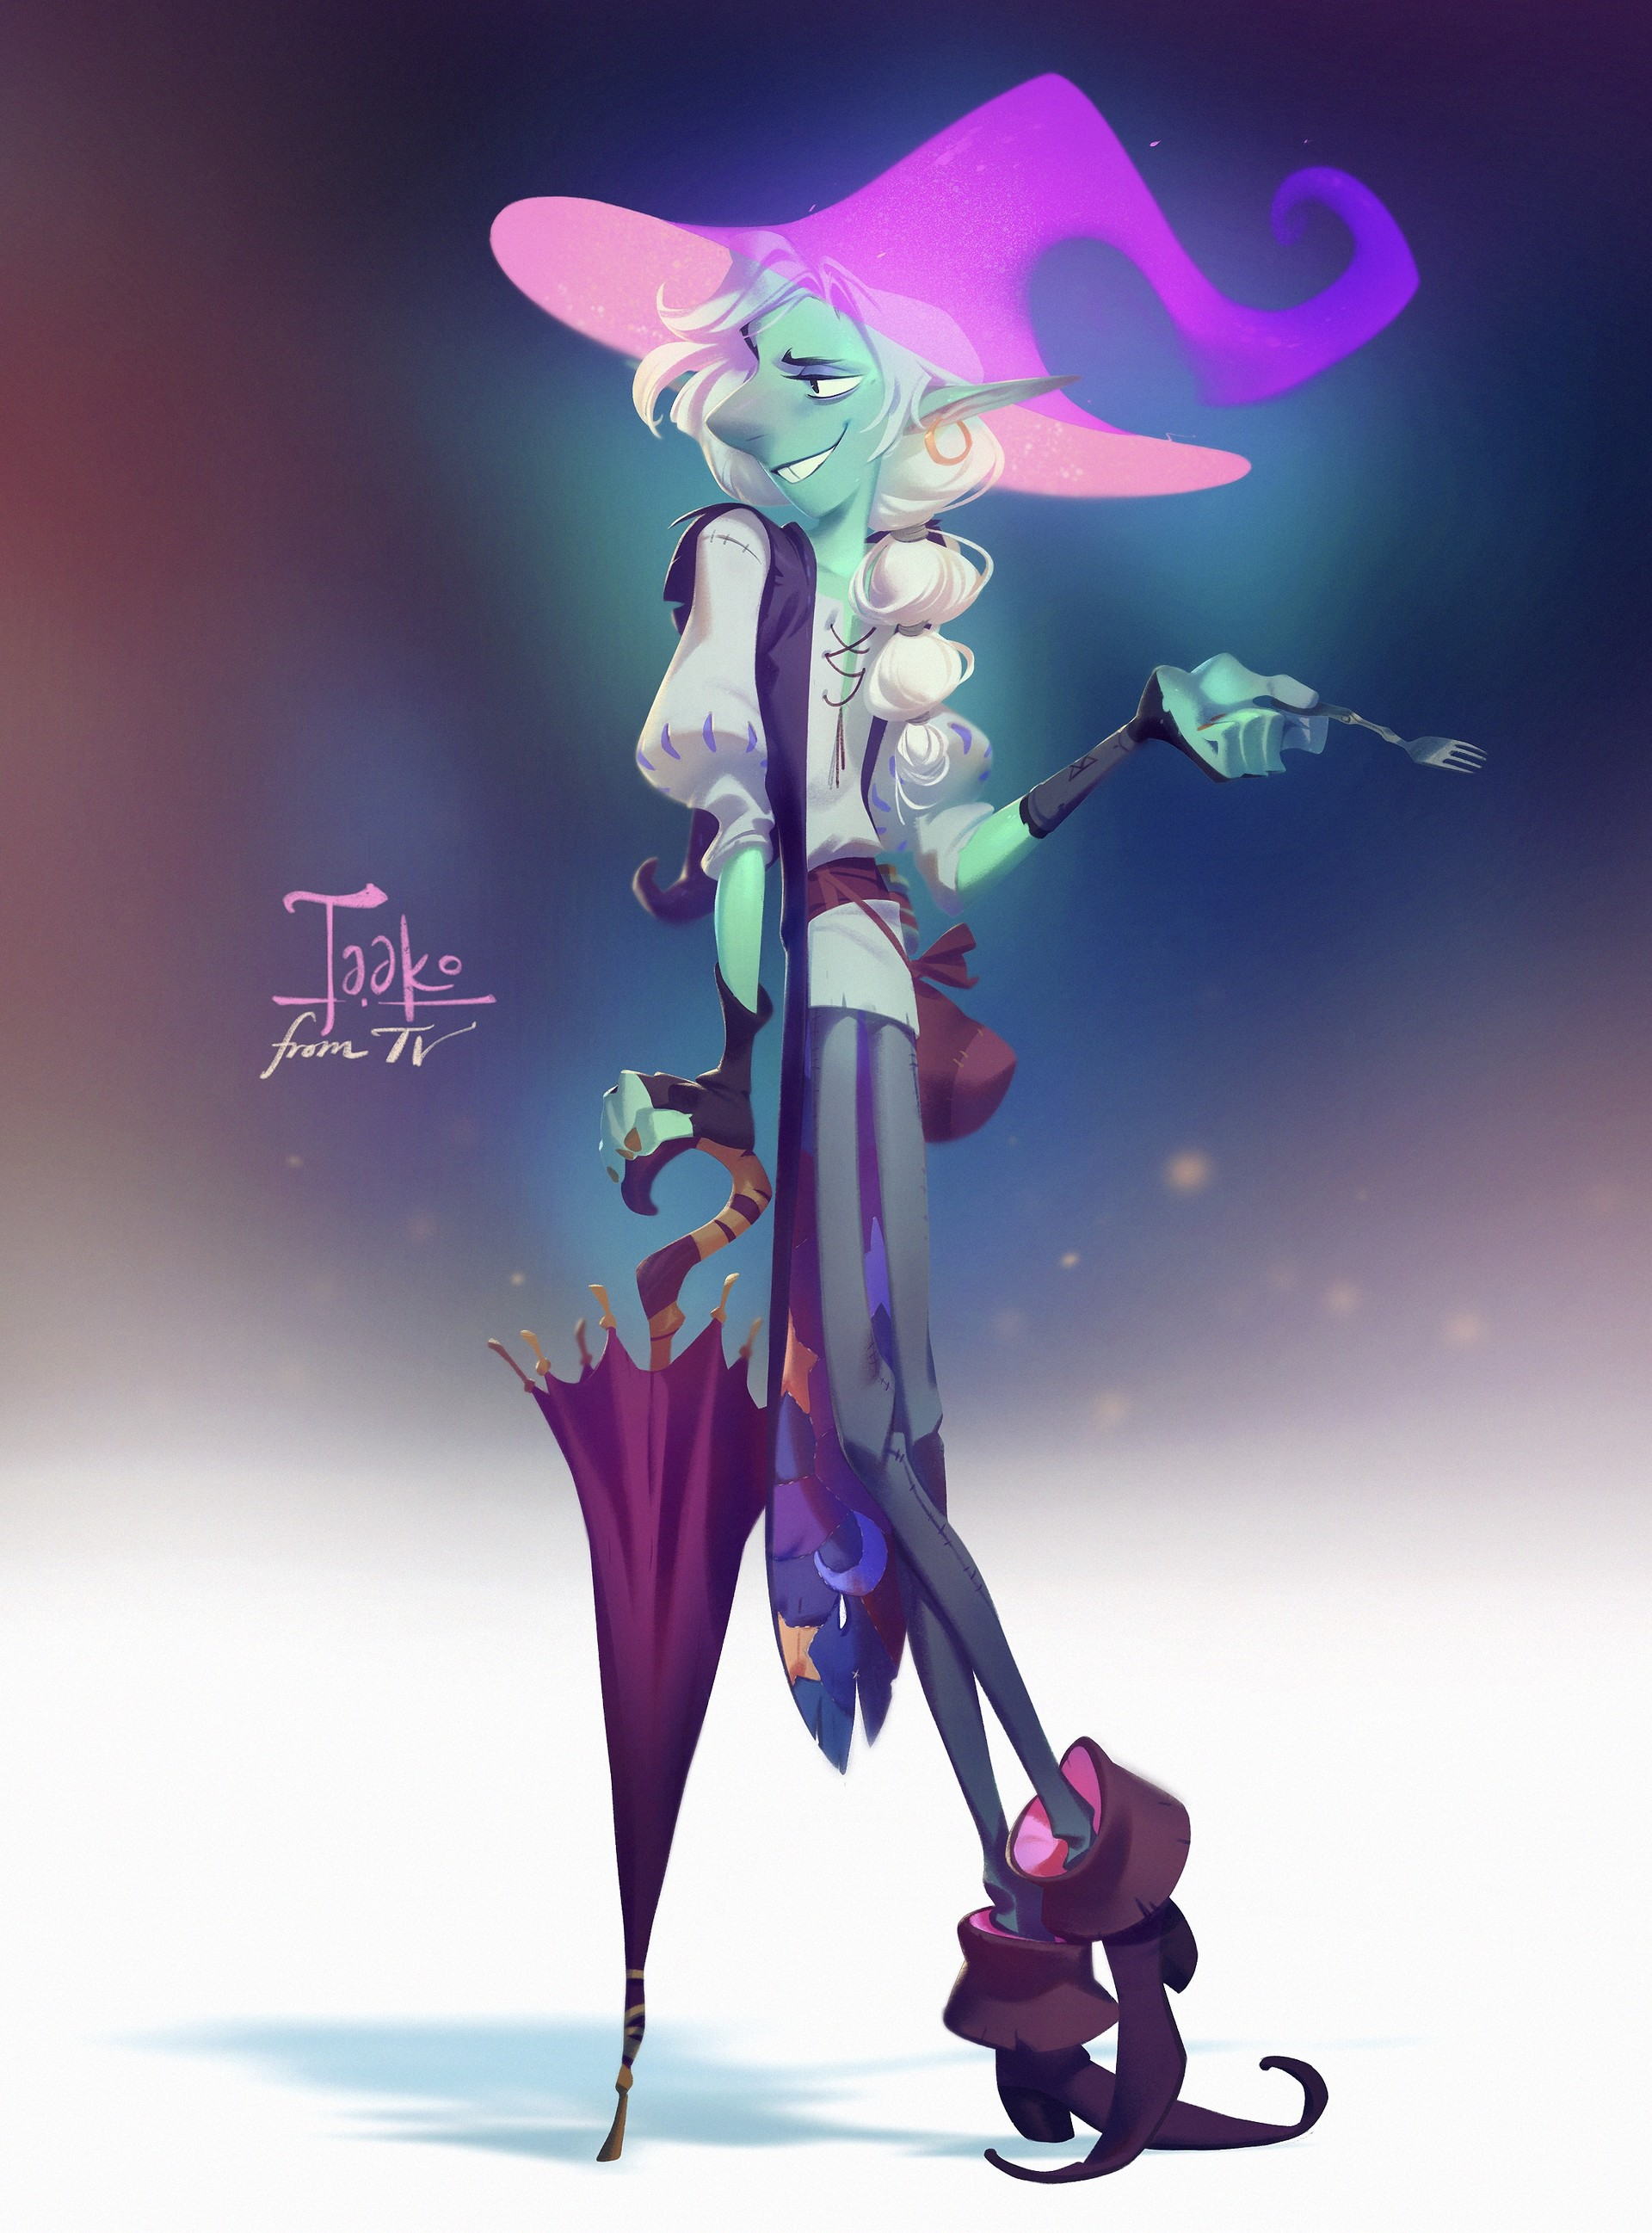 ArtStation - Taako From TV, Nicholas Kole